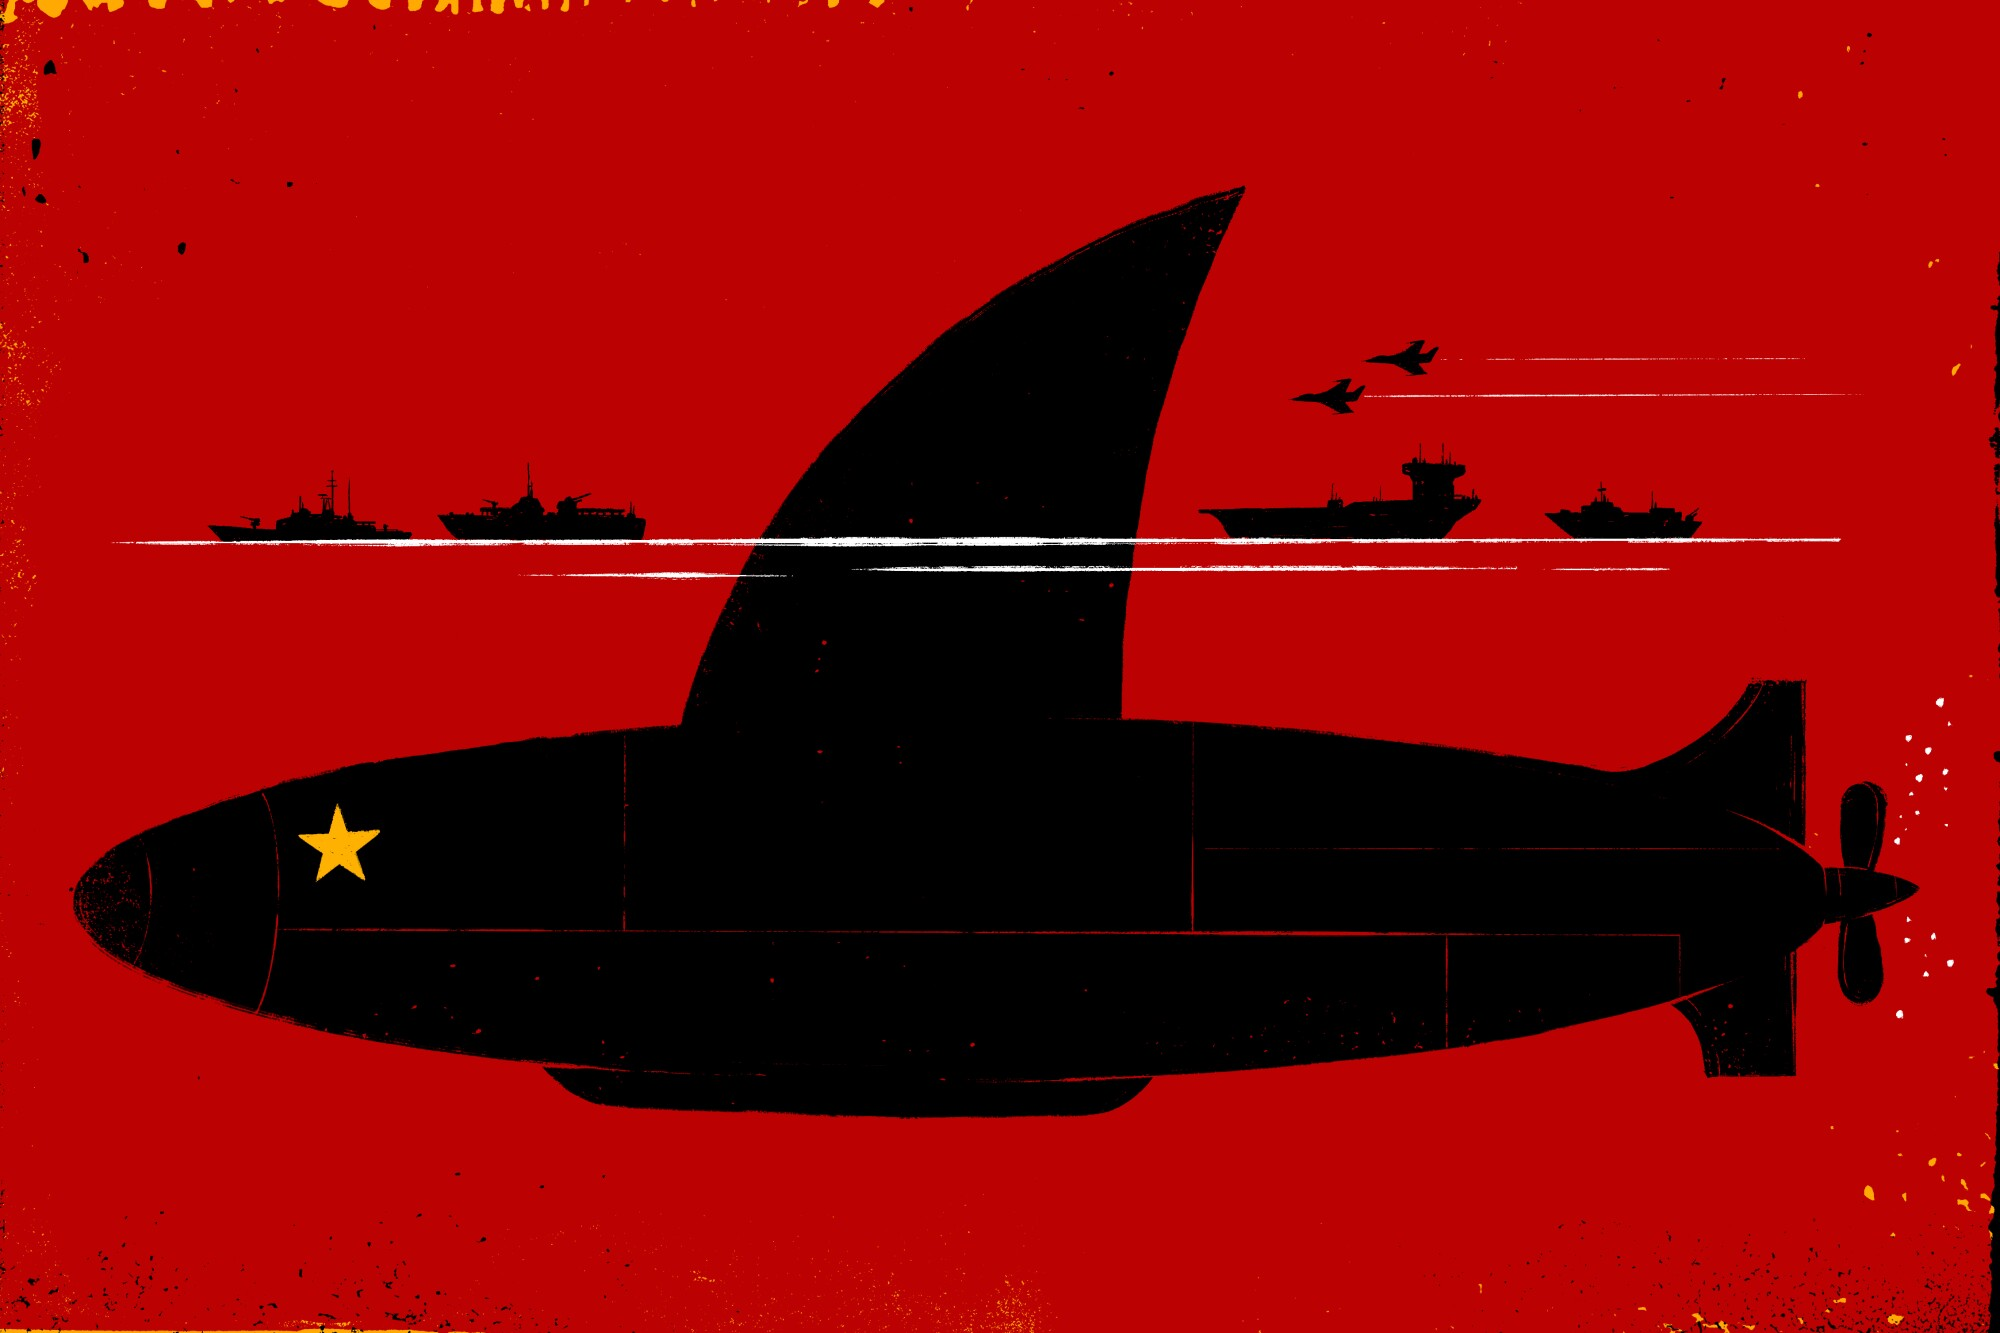 Illustration of a submarine with a yellow star and a large shark fin on a red background with warships and planes